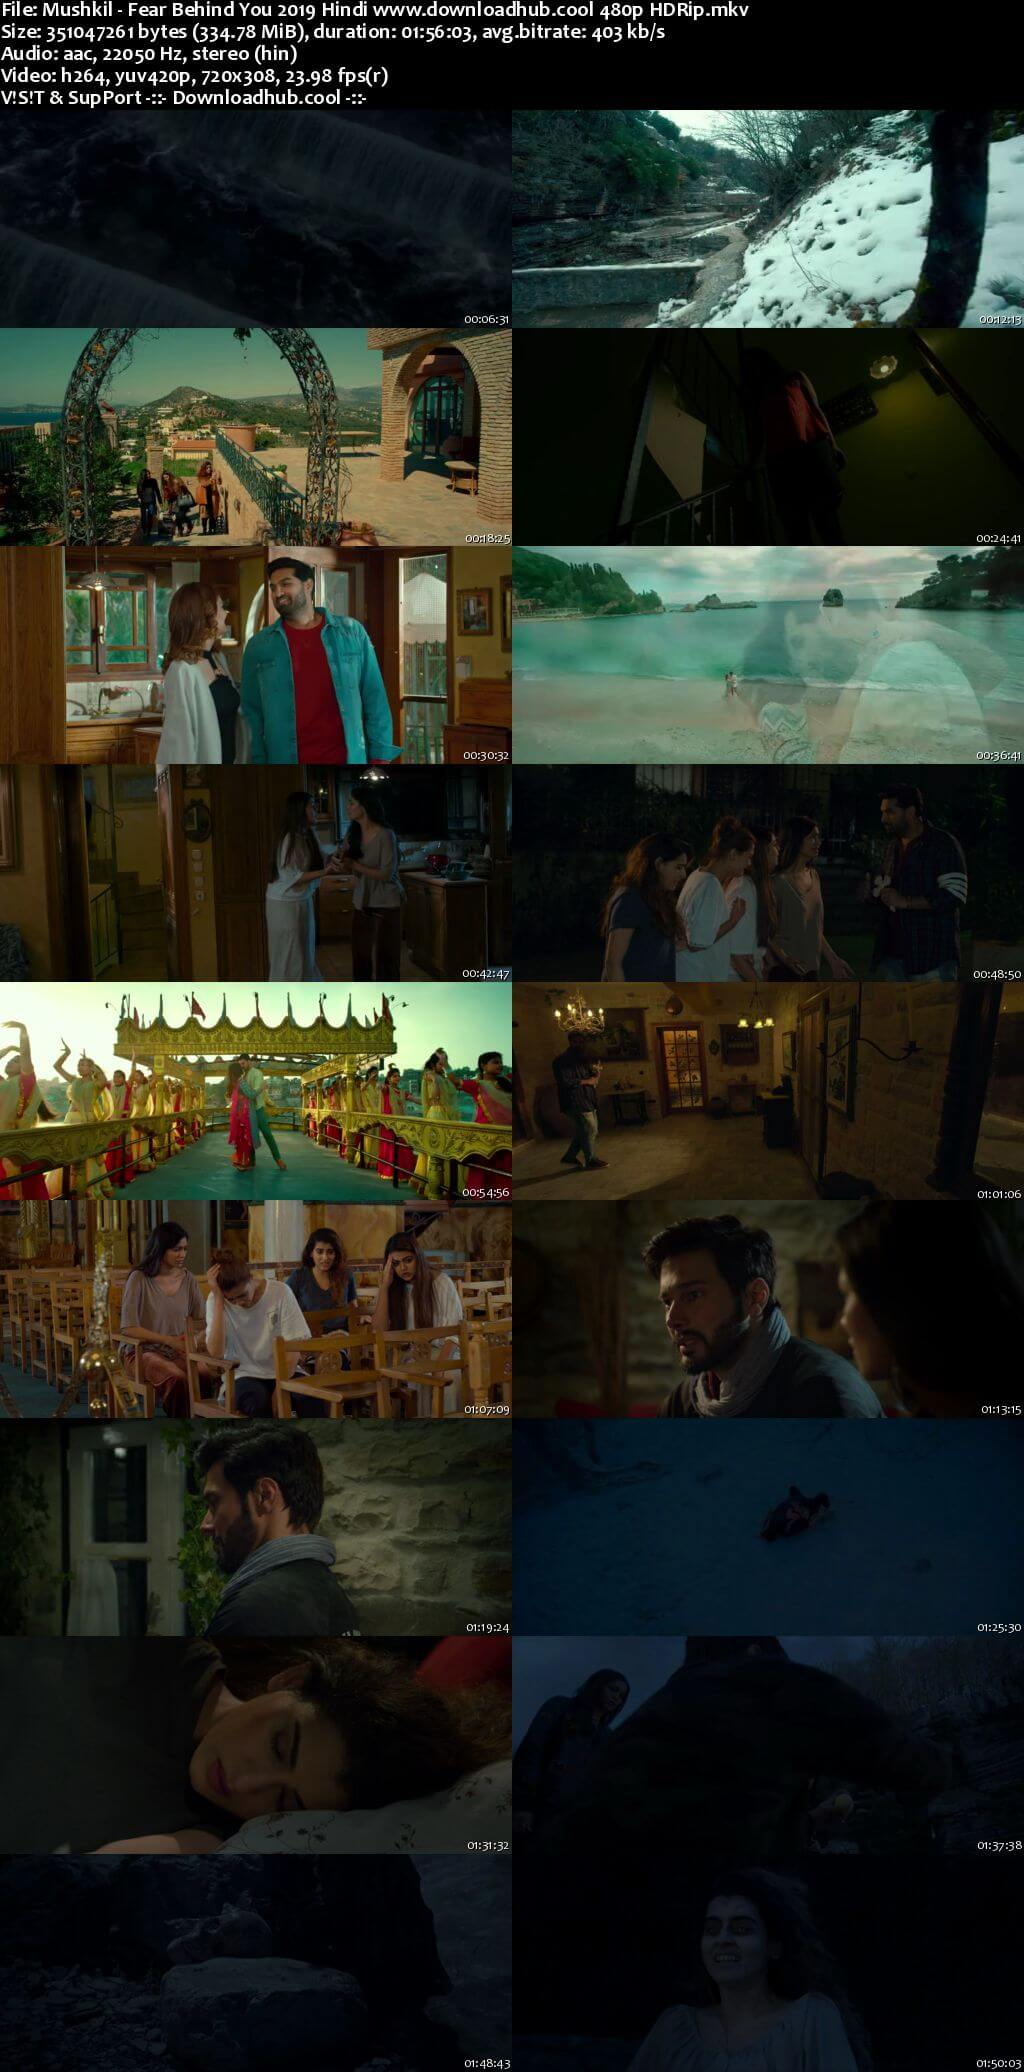 Mushkil Fear Behind You 2019 Hindi 300MB HDRip 480p